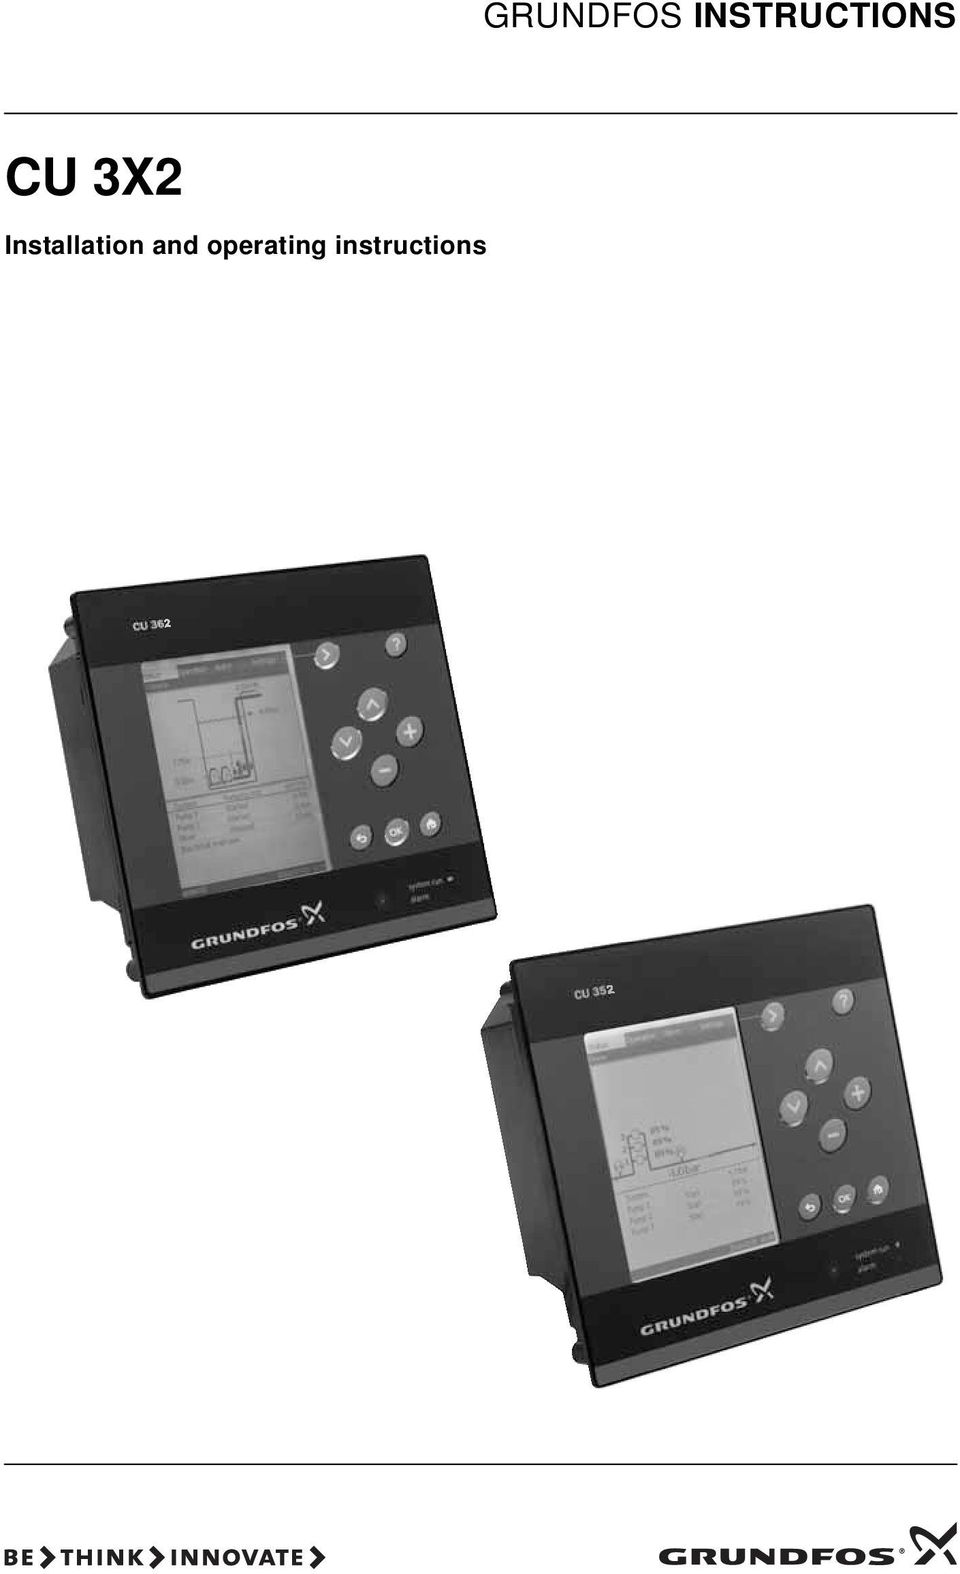 Grundfos Cu 211 Manual Today Guide Trends Sample Wiring Instructions 3x2 Installation And Operating Mq